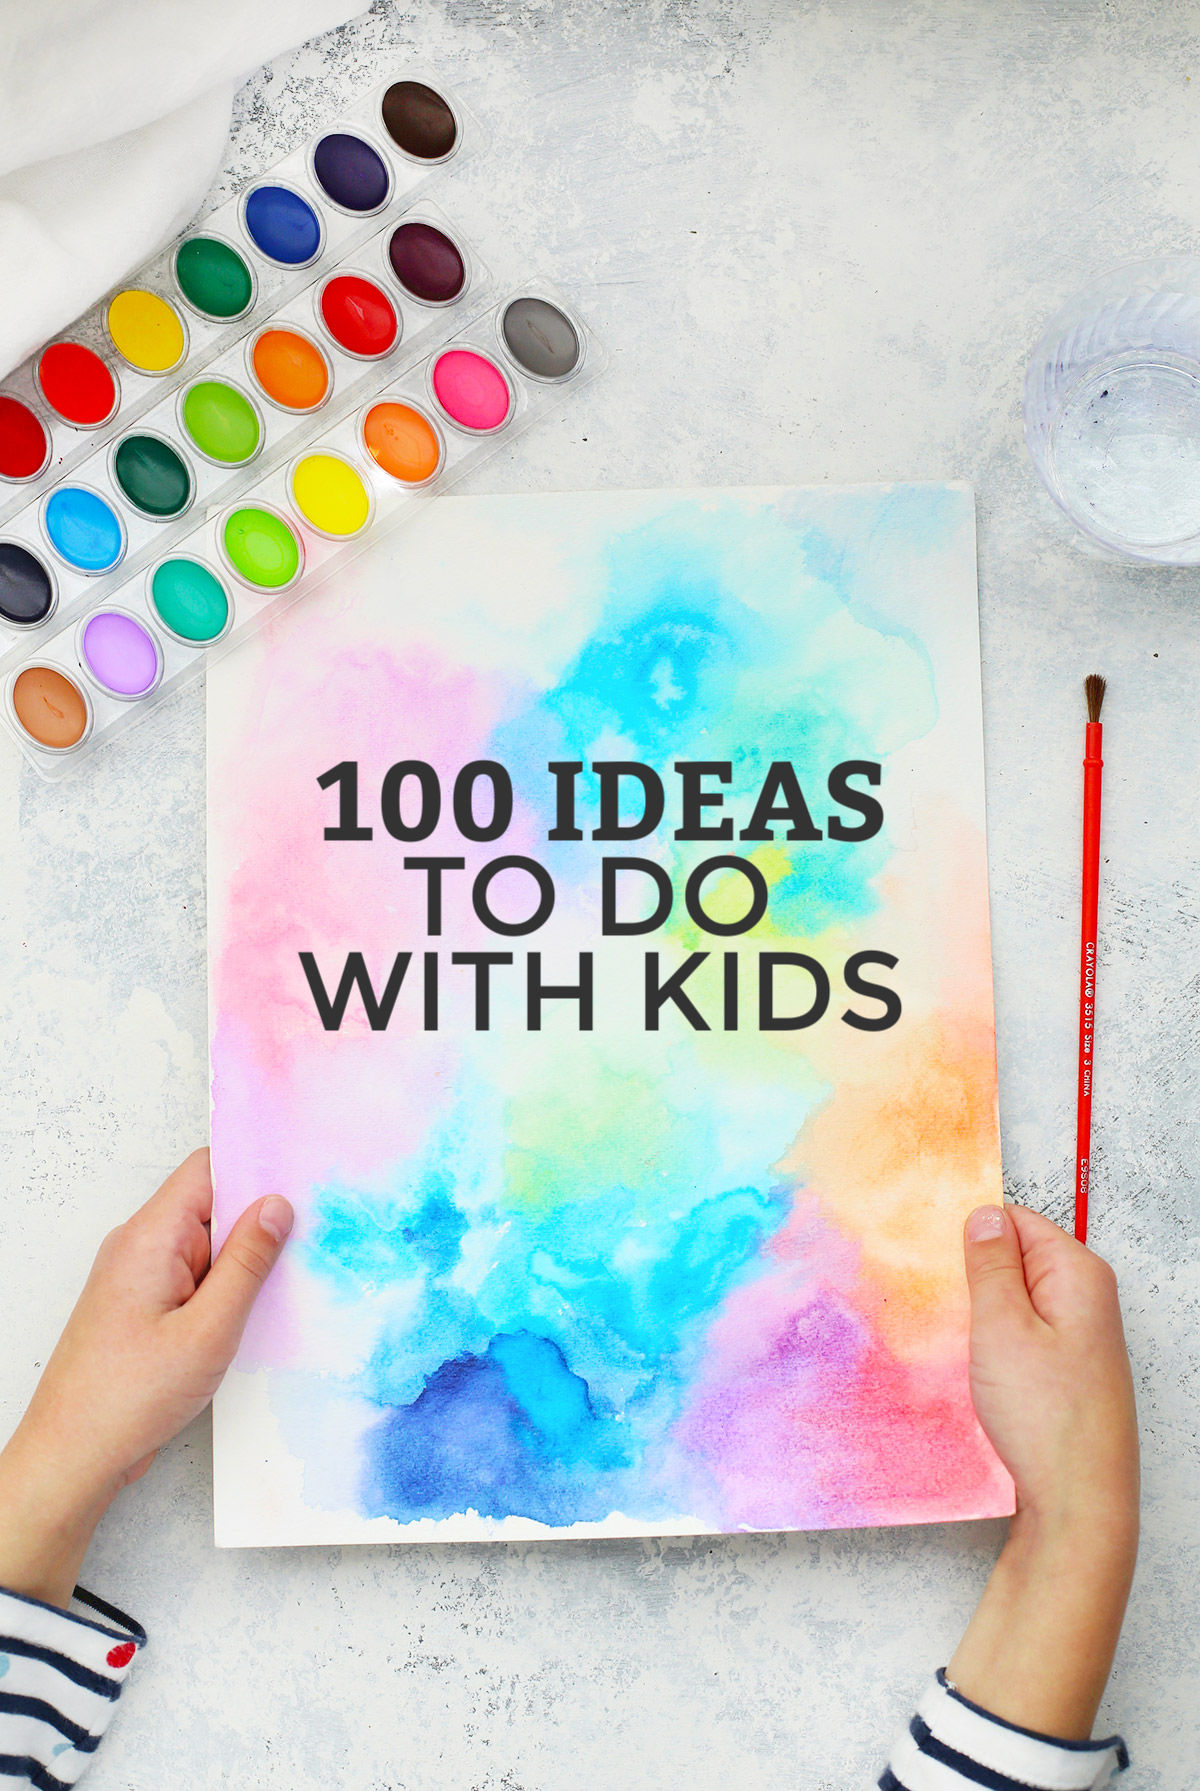 100 Activities to Do With Kids +FREE Printable List from One Lovely Life